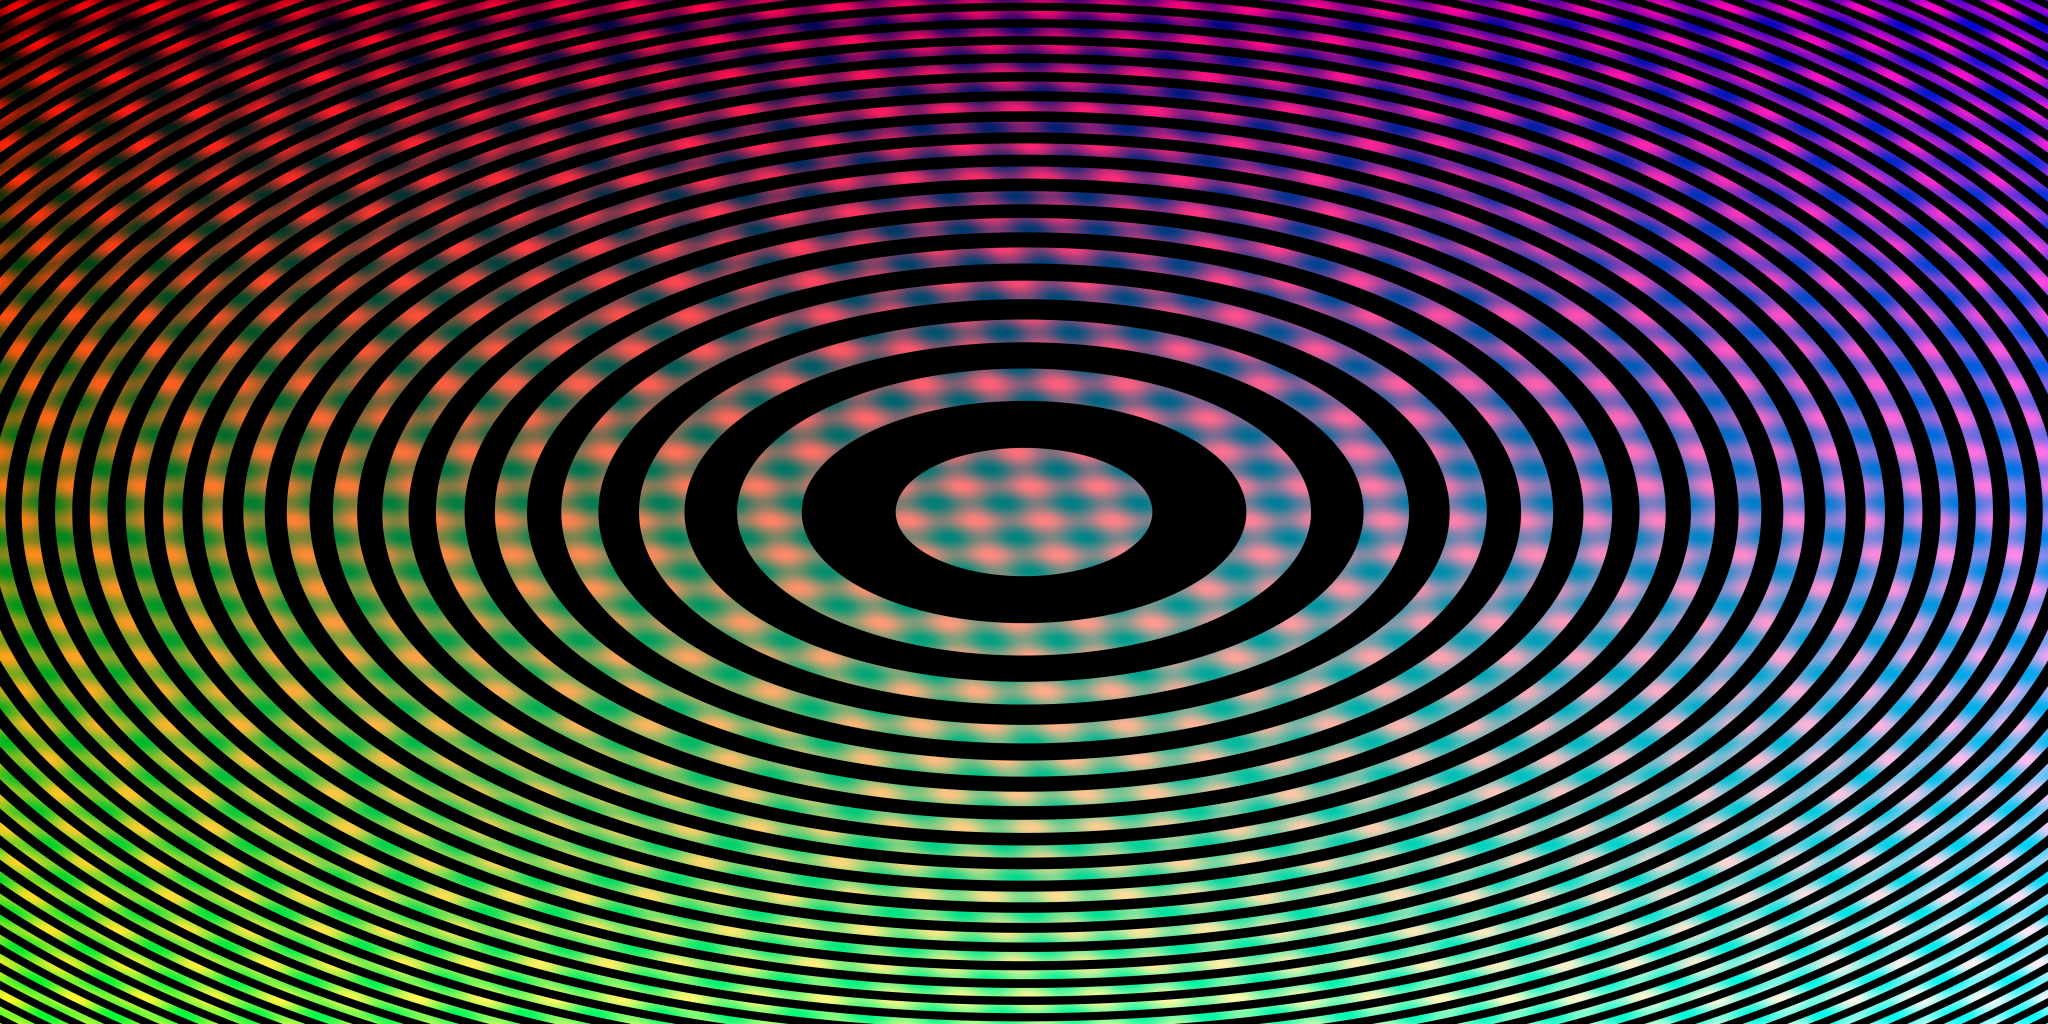 zone plate with blurry colors in the background